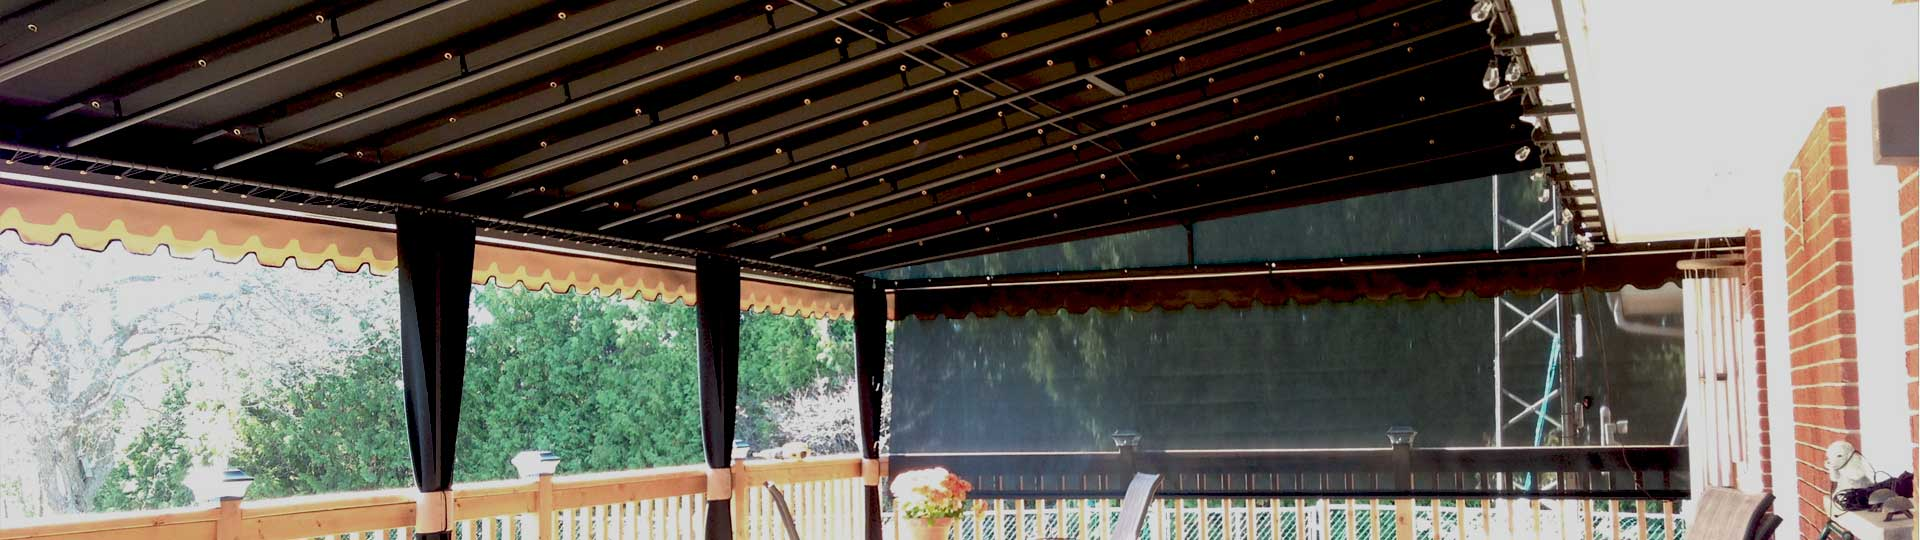 High Quality Awning Framework and Awning Fabrics